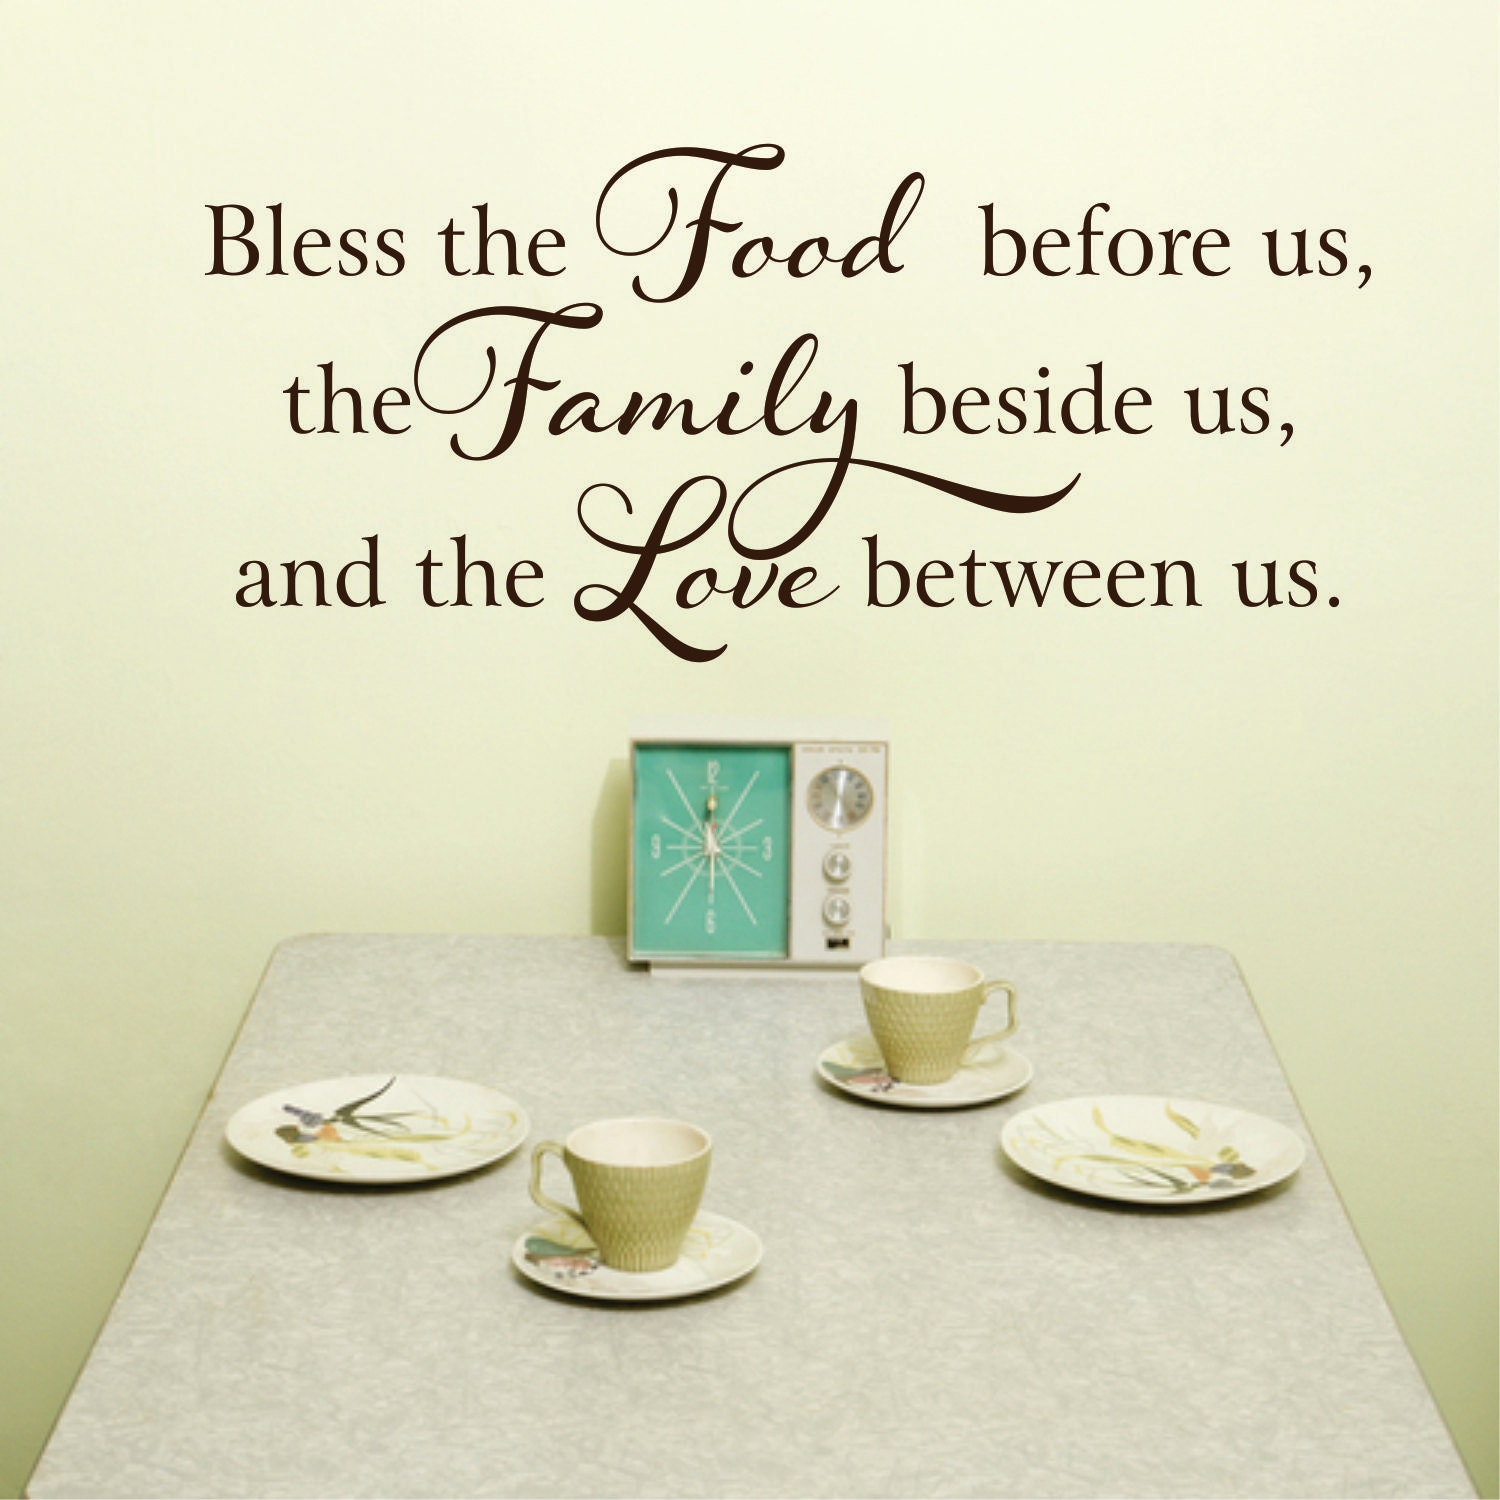 Kitchen Wall Decal - Kitchen Decor - Kitchen Signs - Bless this Food ...